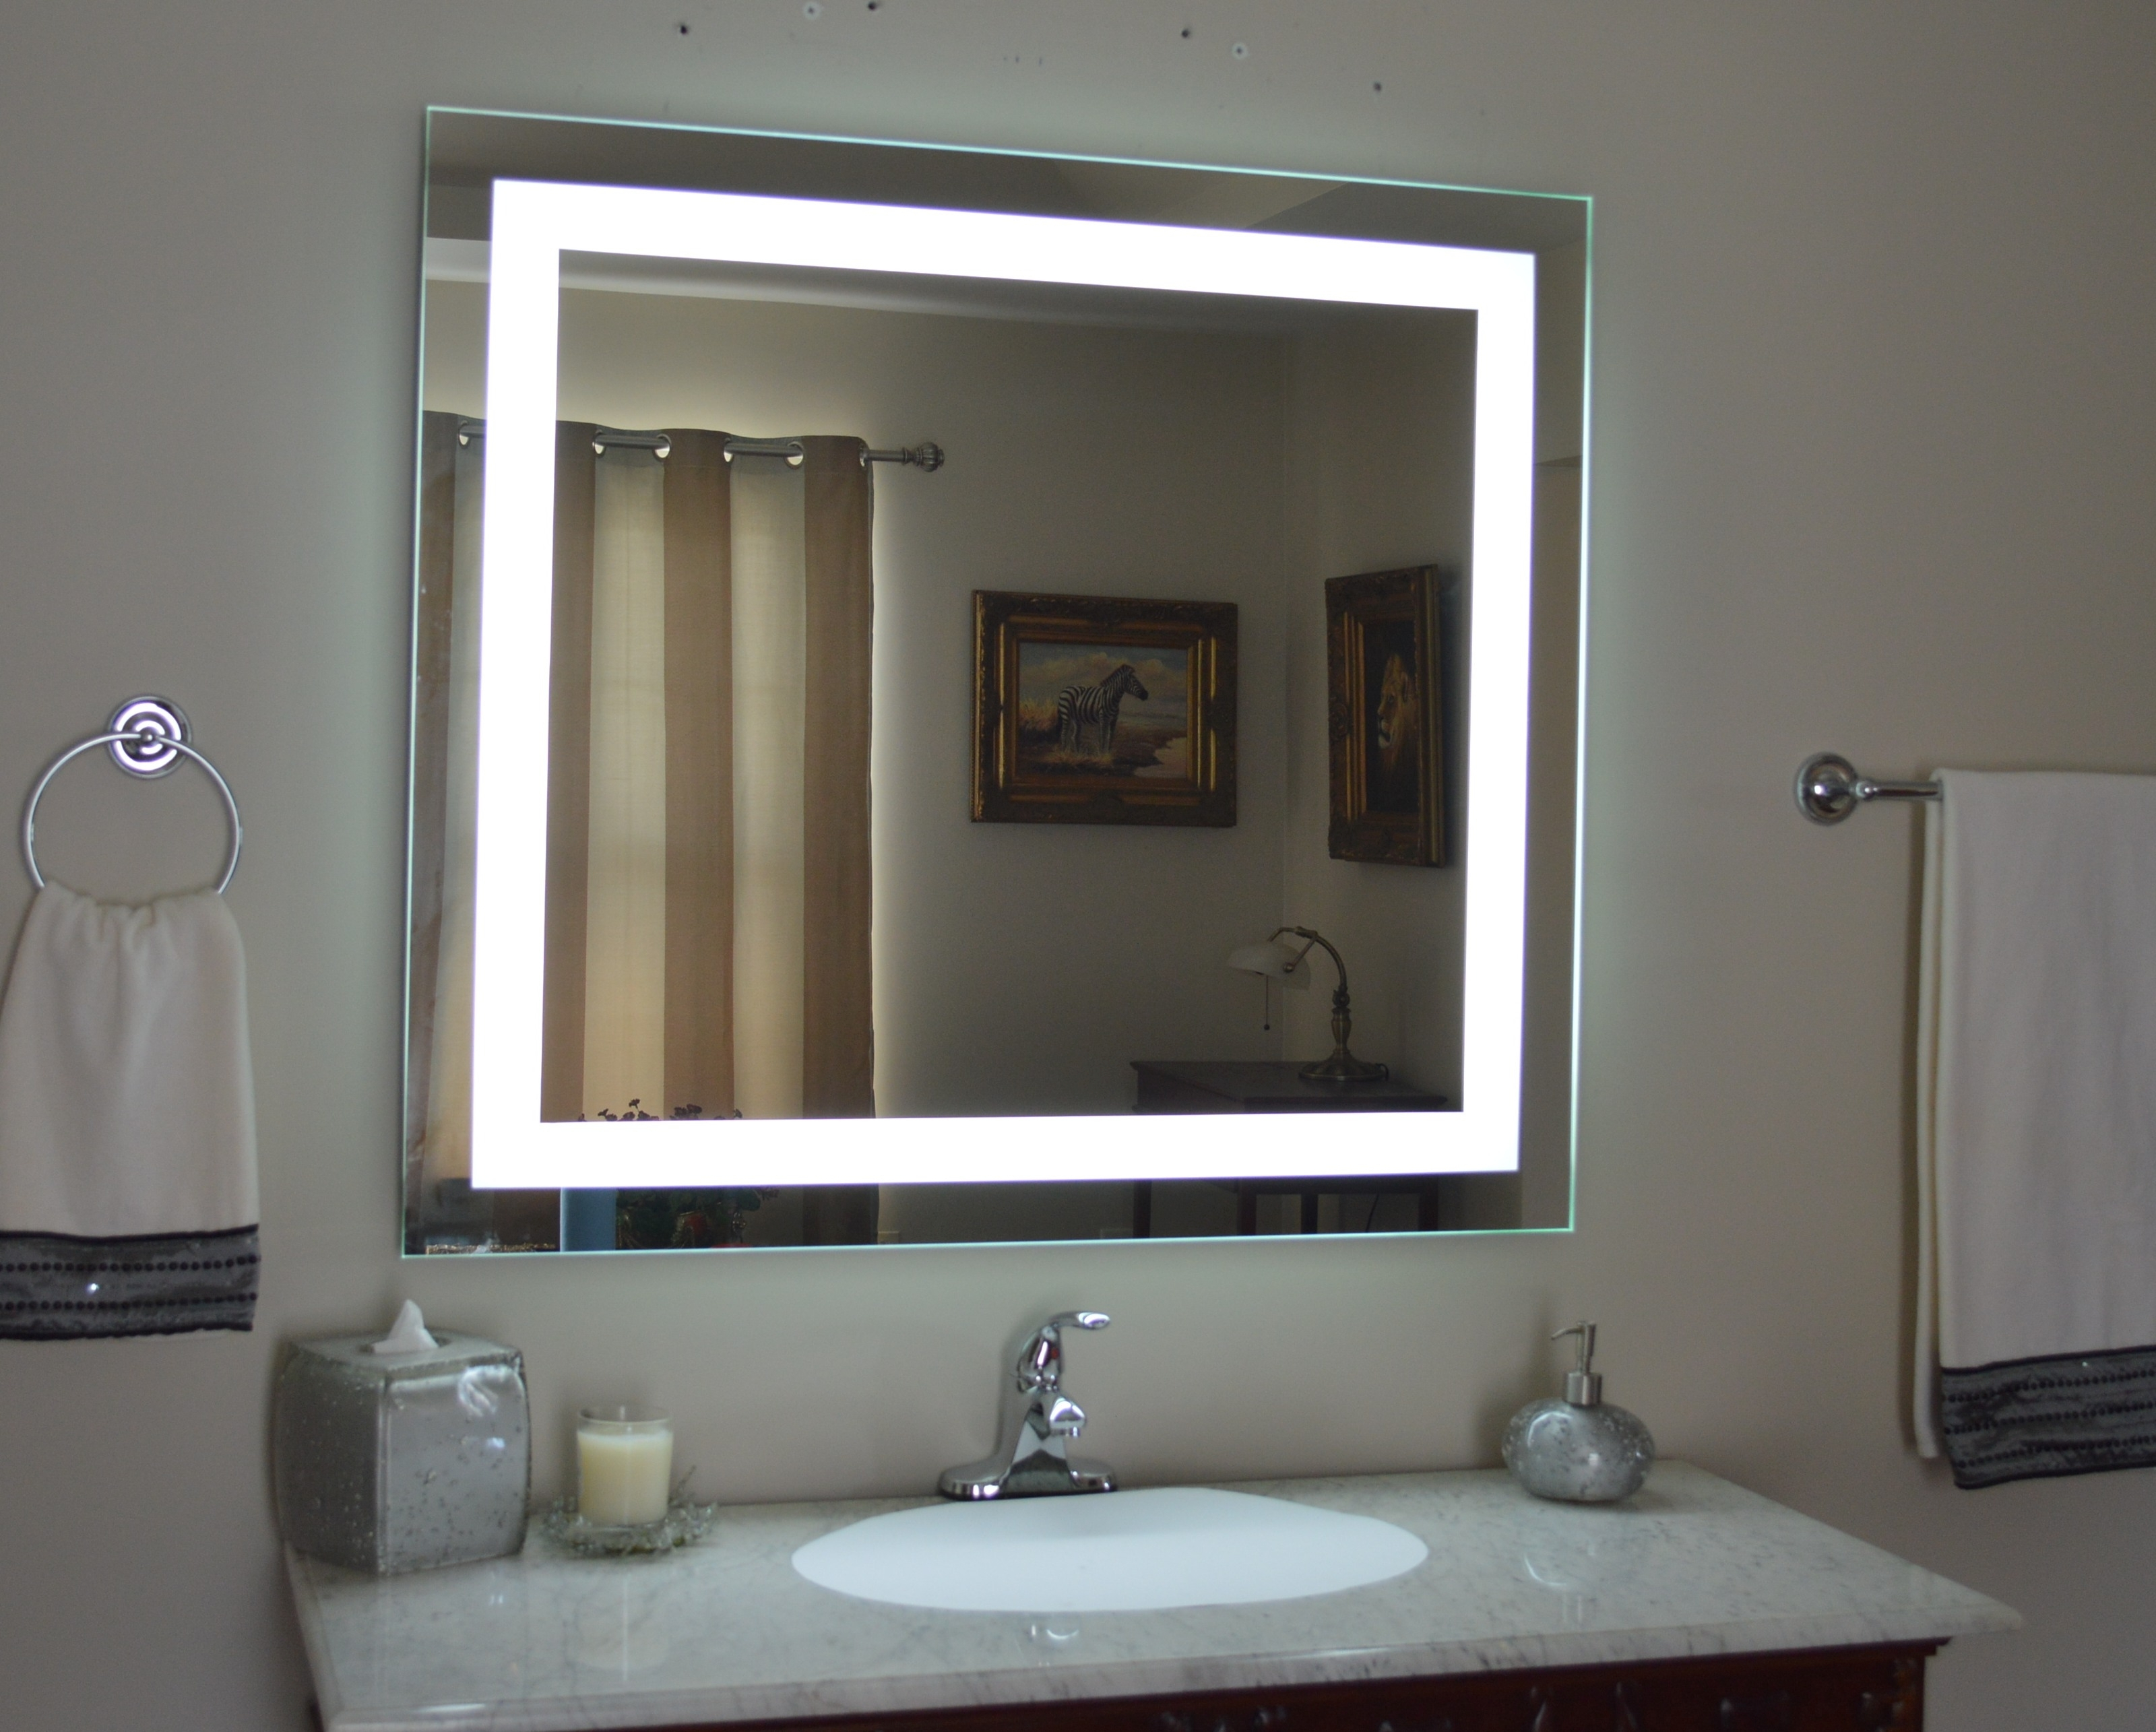 Conair Illuminated Wall Mount Swivel Mirror